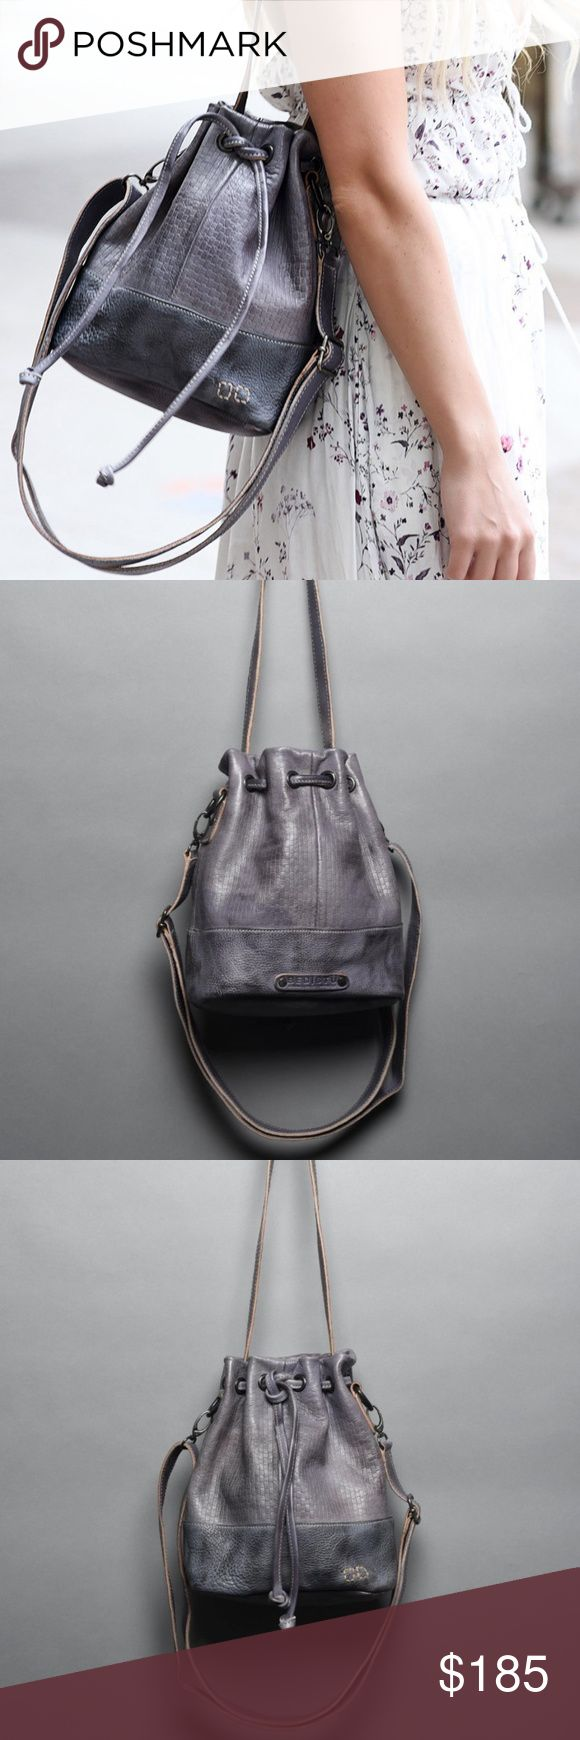 "Bed Stu Abbeville Leather Crossbody Bucket Bag NWT This beautiful leather bucket bag can be worn as a crossbody or as a shoulder bag.  New with tag.  The crossbody strap is adjustable and removable.  The shoulder strap can be hidden inside of the bag.  The color name is ""Smoke Blue"".  It looks more like a gray color.  Chrome free, vegetable tanned leather.  Canvas lined, w/ 1 zipper pocket, & 2 slip pockets.  Measures 10"" H, 11.5"" W, 5"" D, with an 11.25"" drop. Bed Stu Bags"